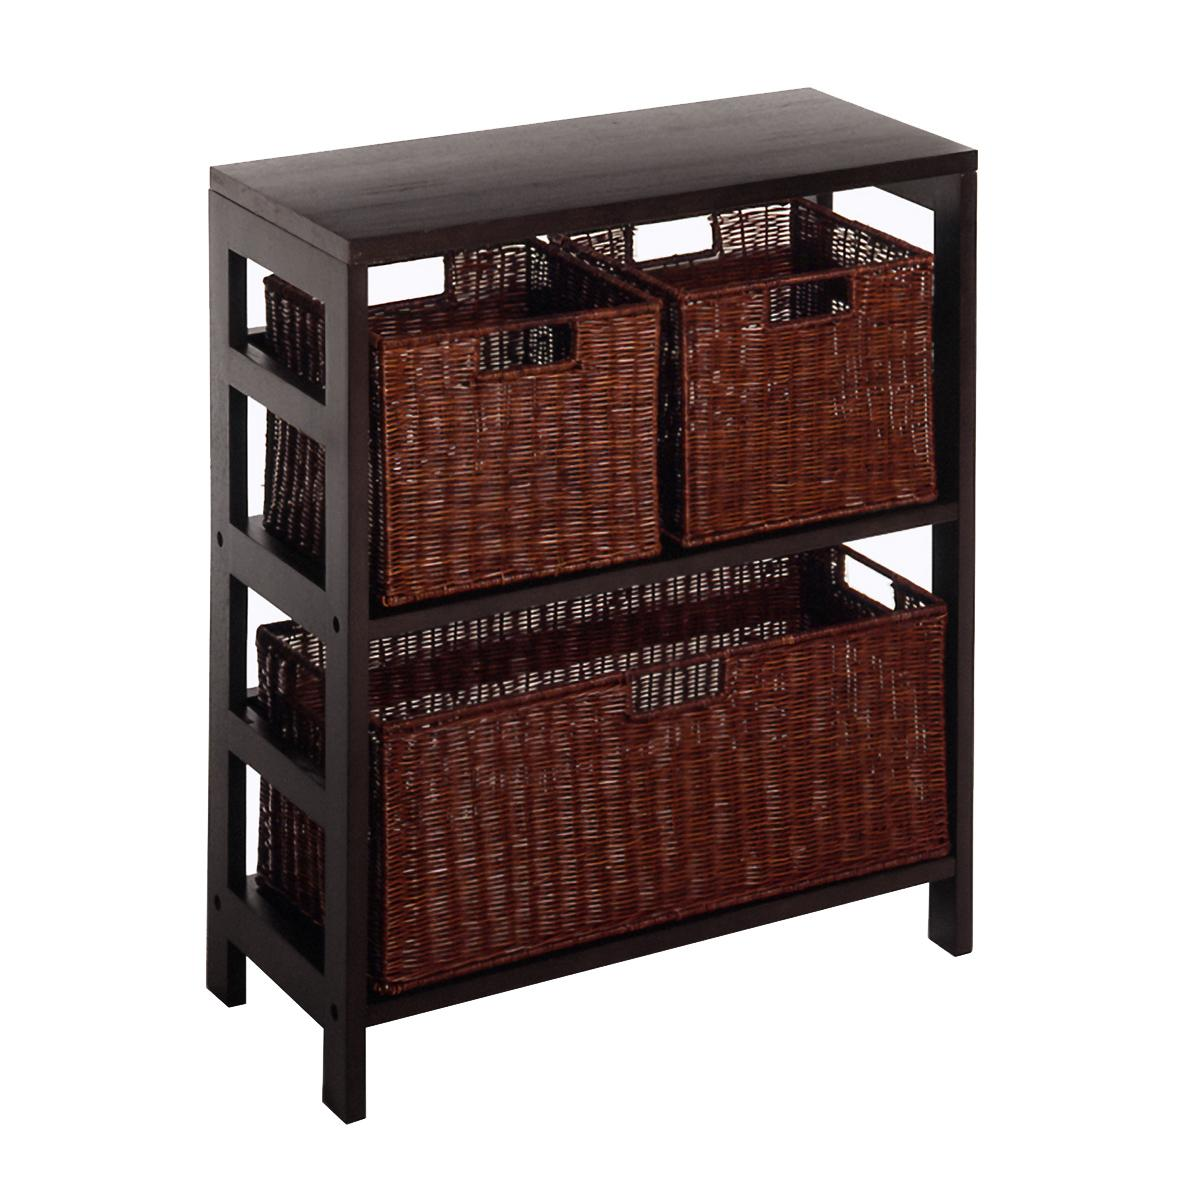 winsome wood leo wood 3 tier shelf with 3 rattan baskets. Black Bedroom Furniture Sets. Home Design Ideas